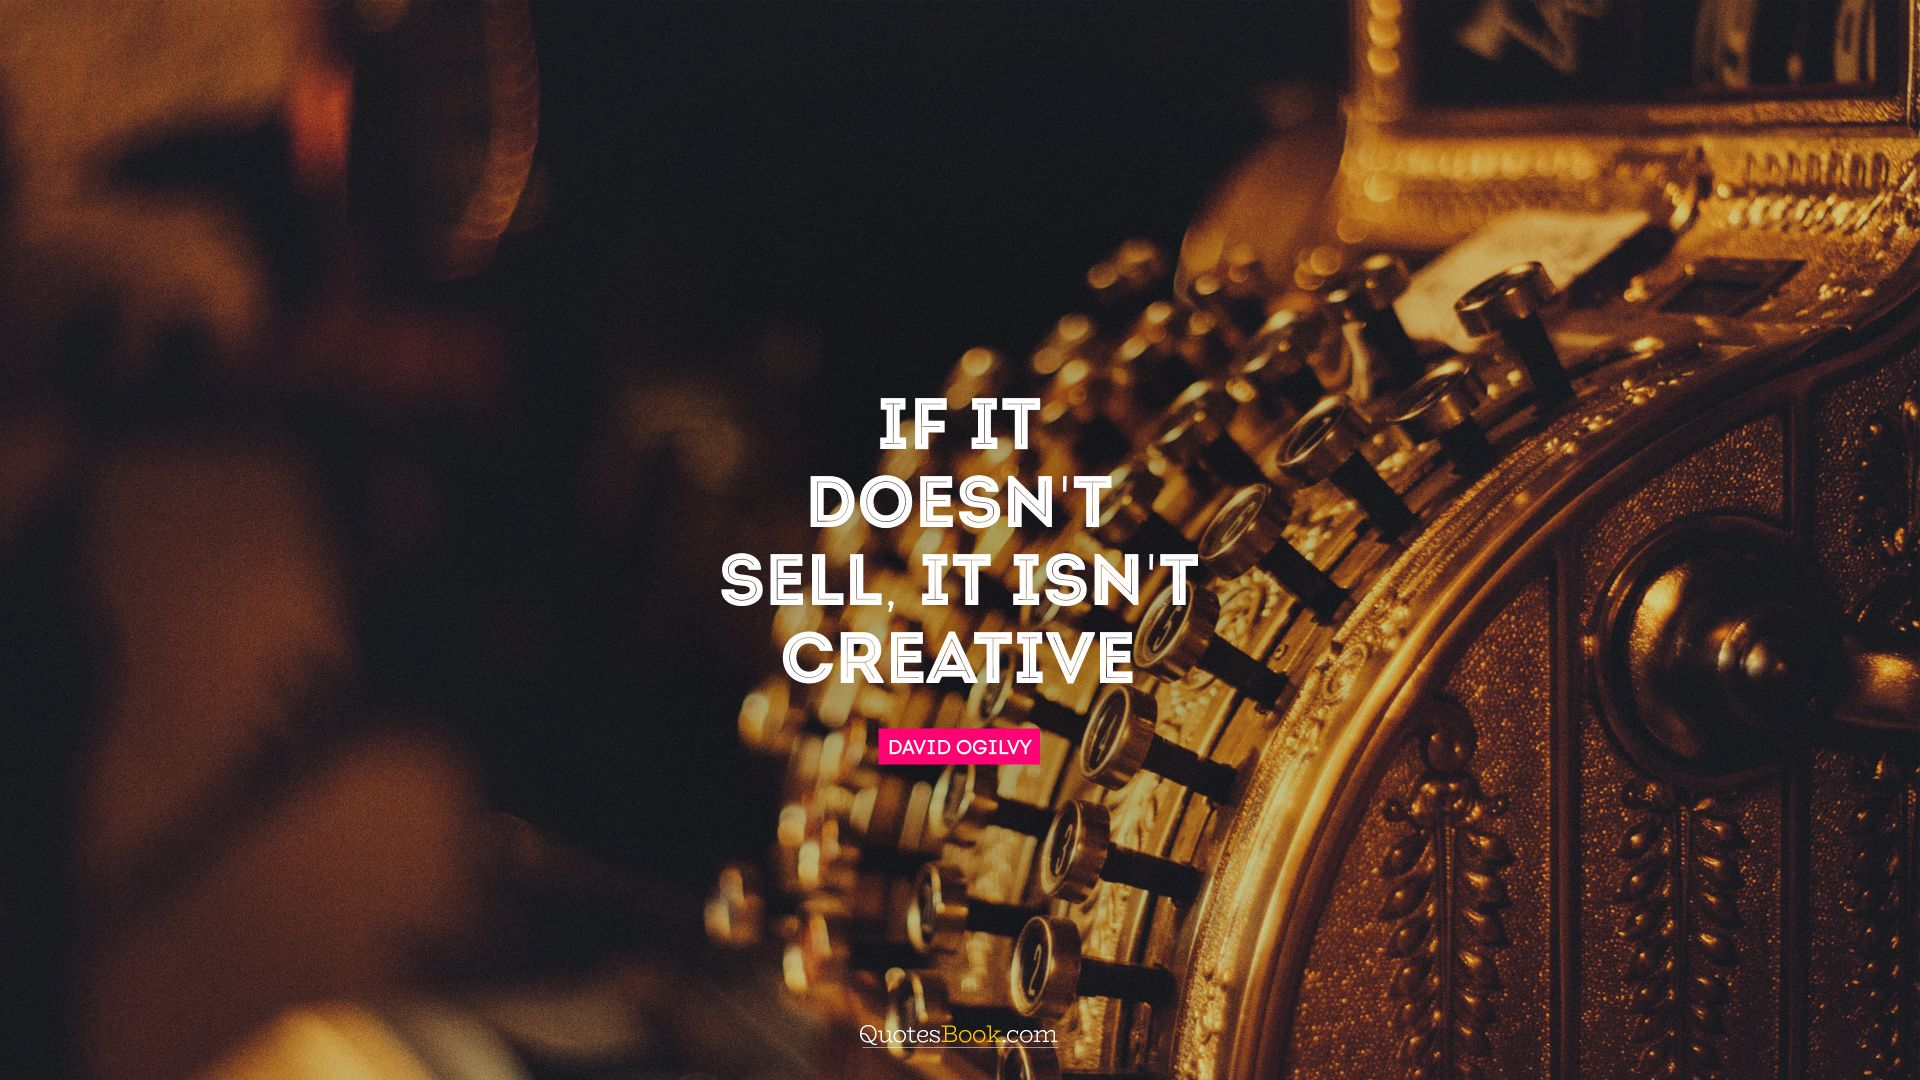 If it doesn't sell, it isn't creative. - Quote by David Ogilvy